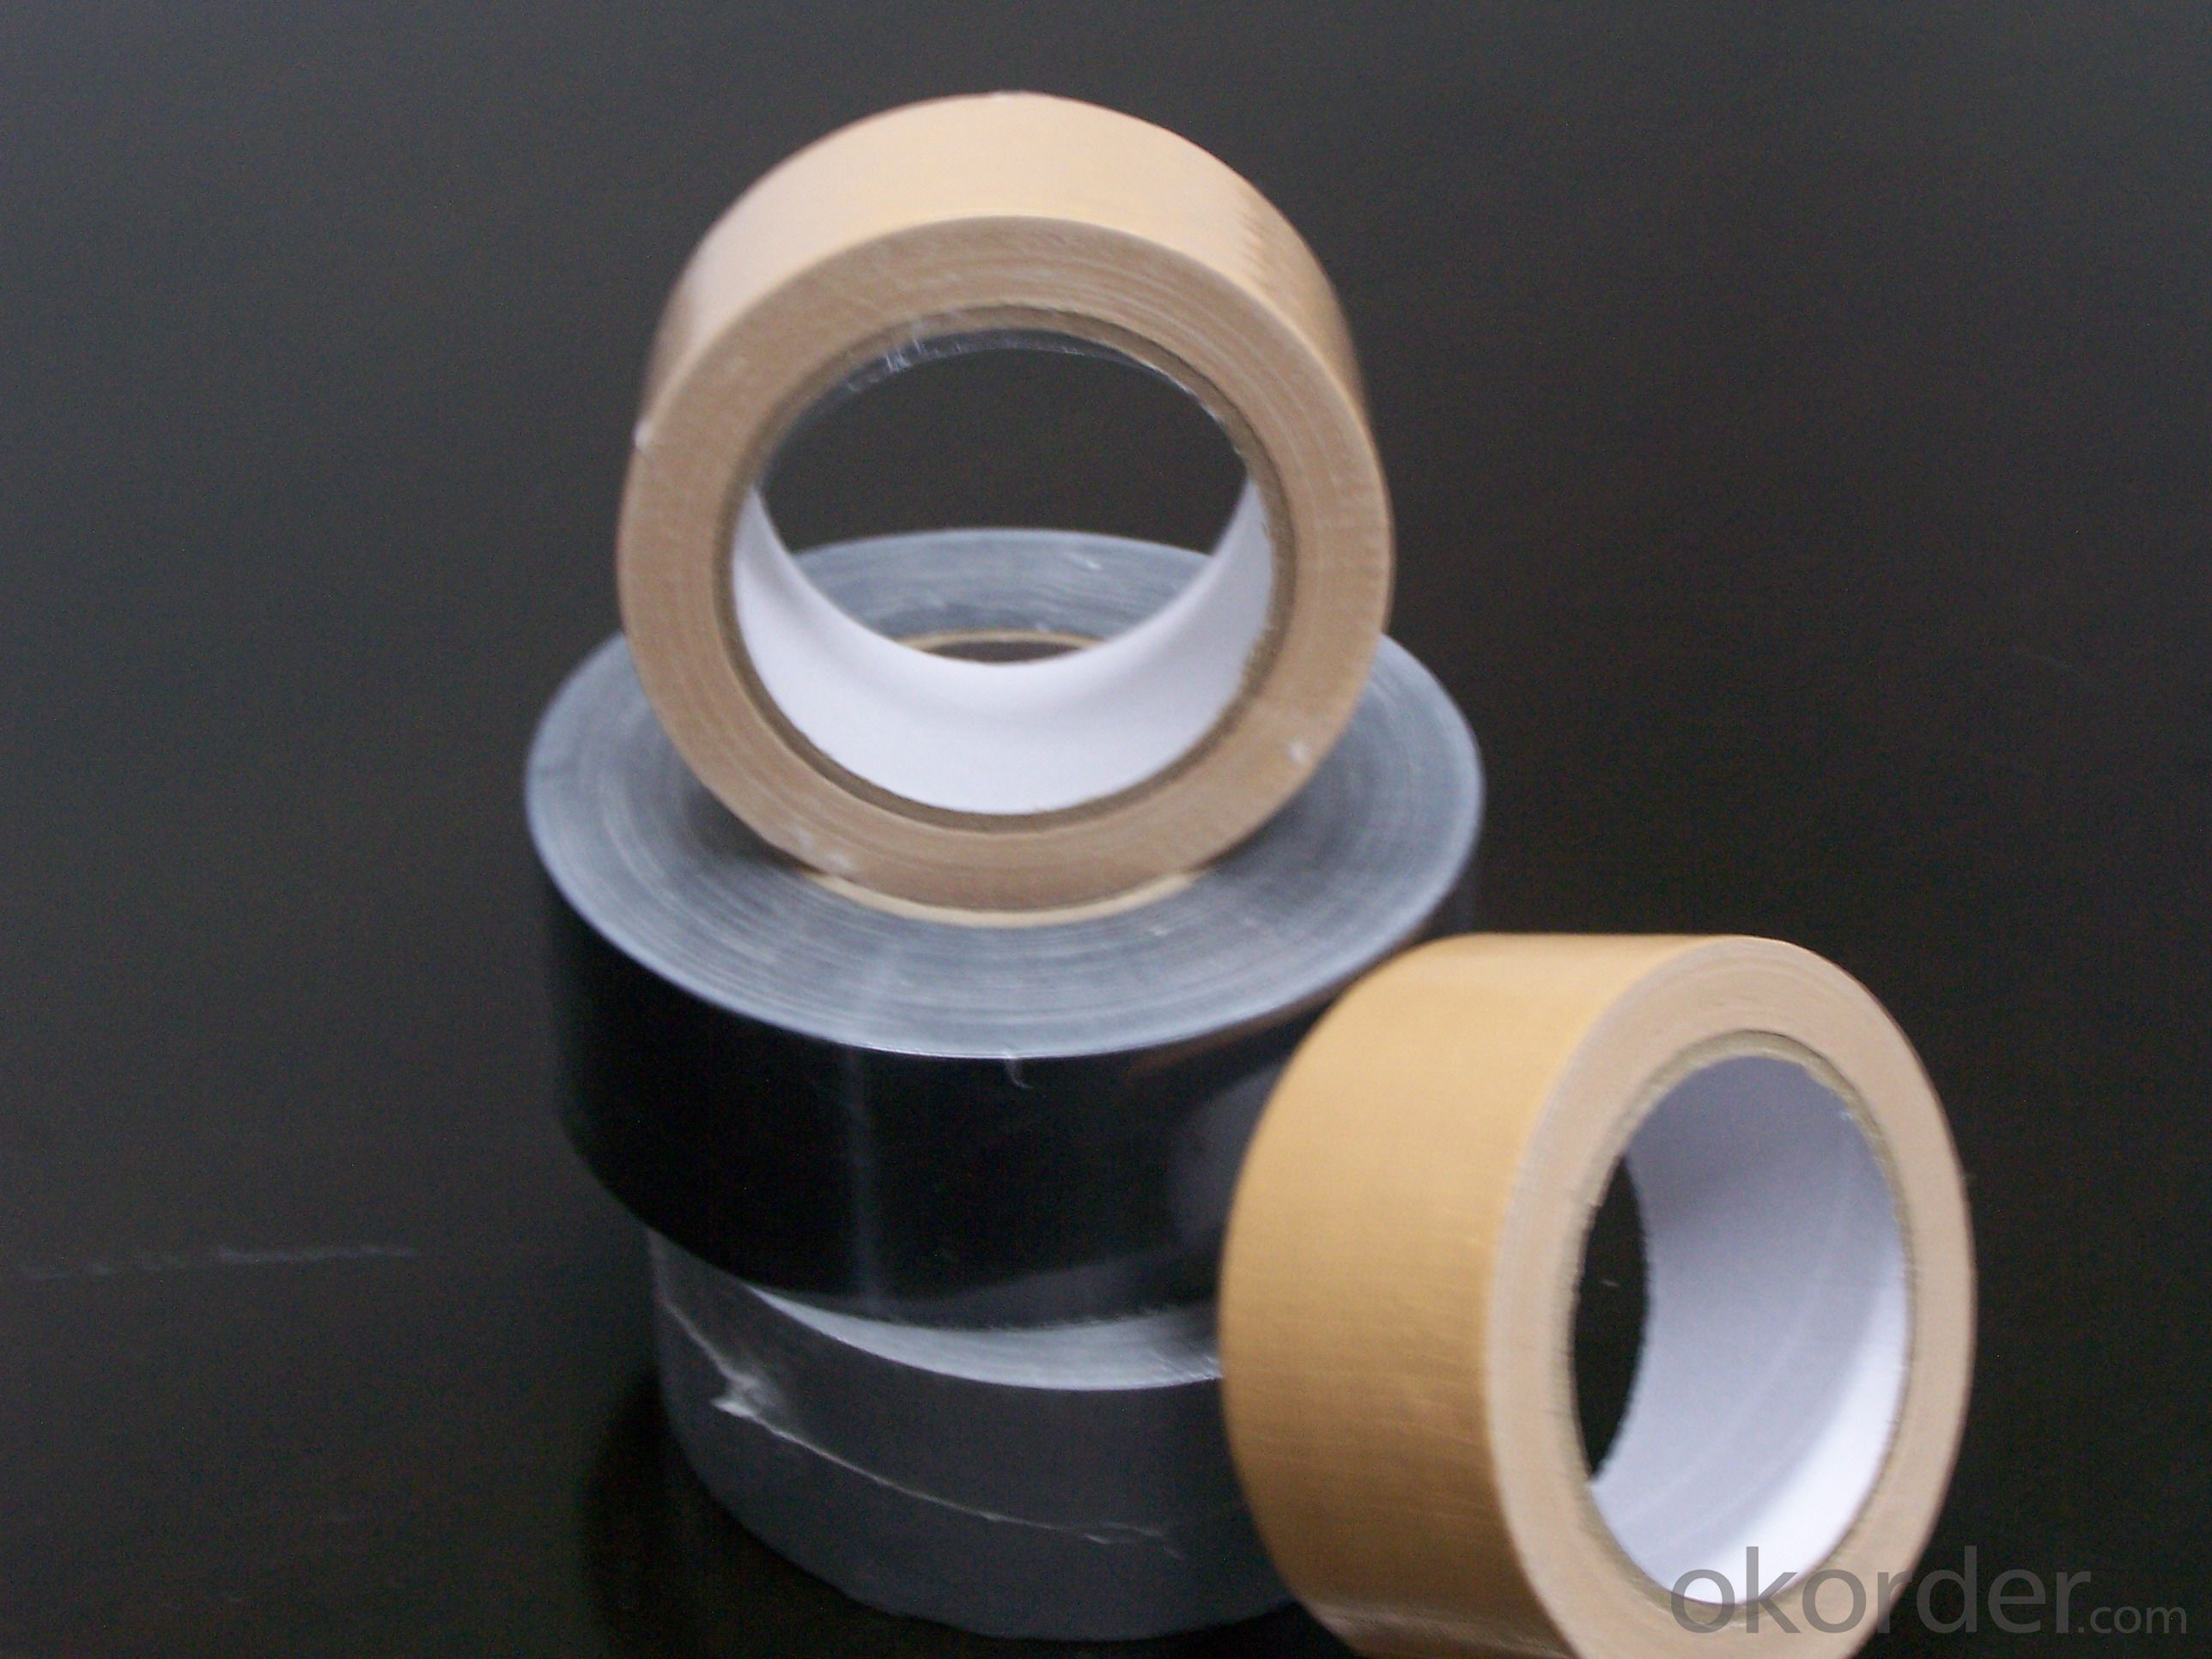 High Tensile Strength BOPP Carton Sealing Pack Bopp Tapes Y-507